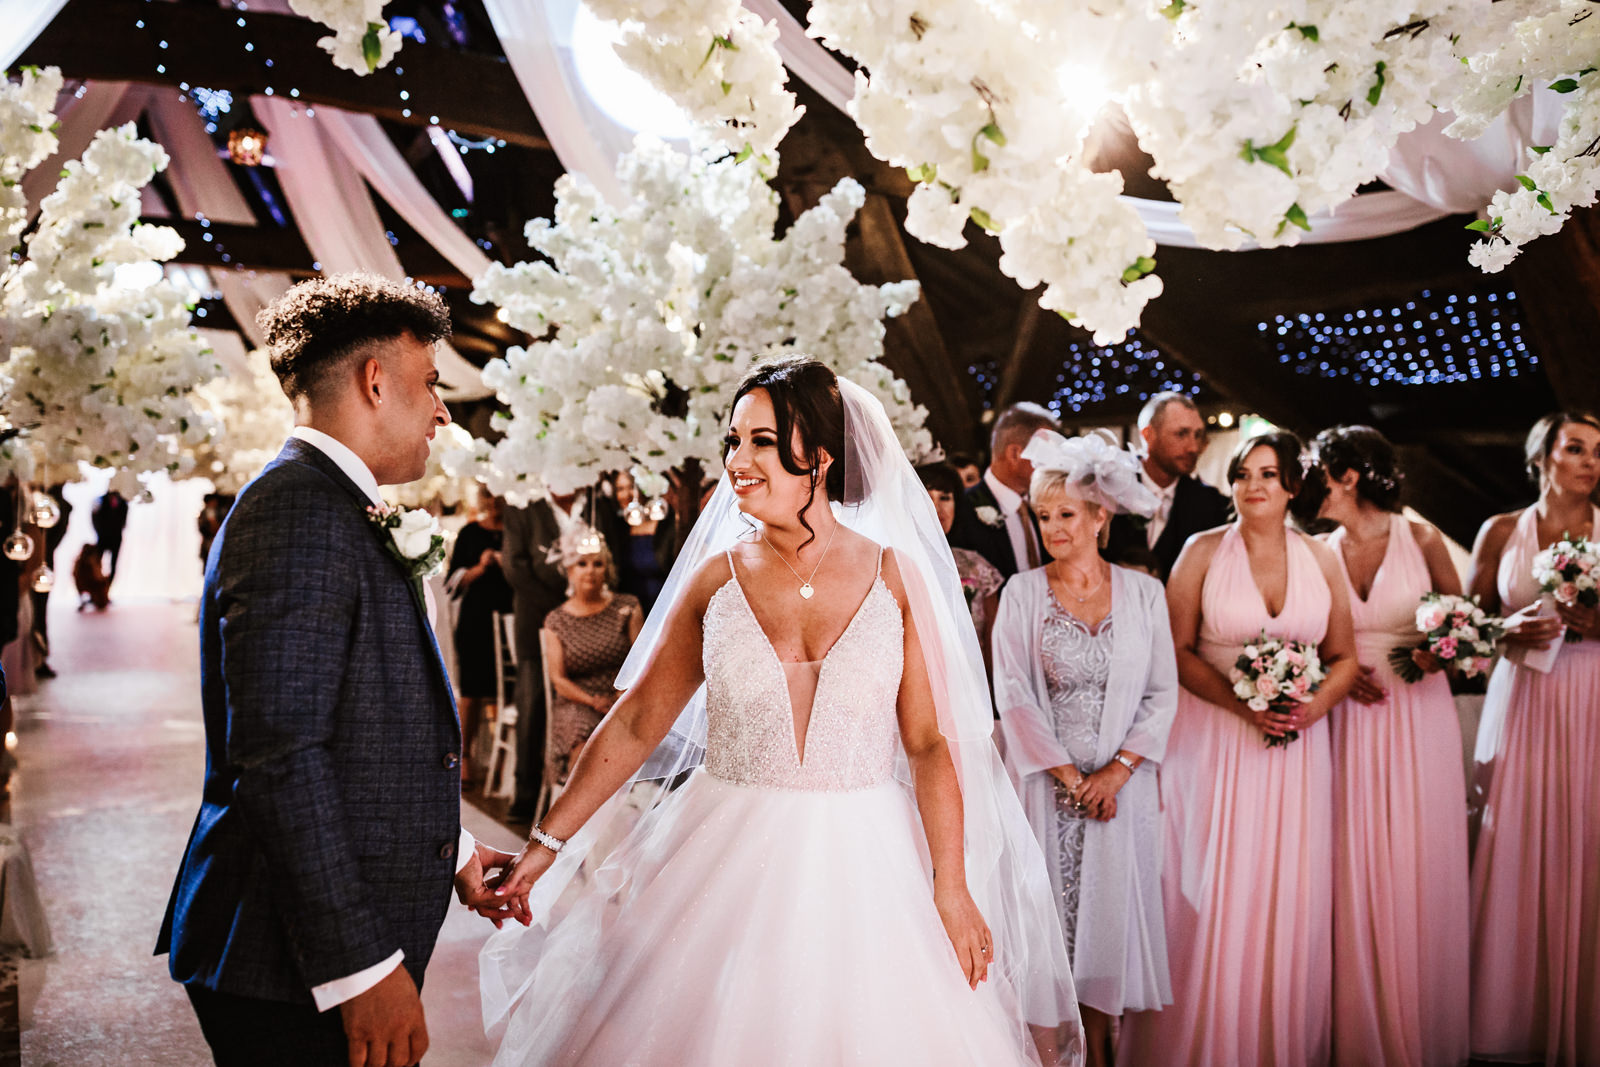 Bride and groom see each other for the first time at the end of the aisle